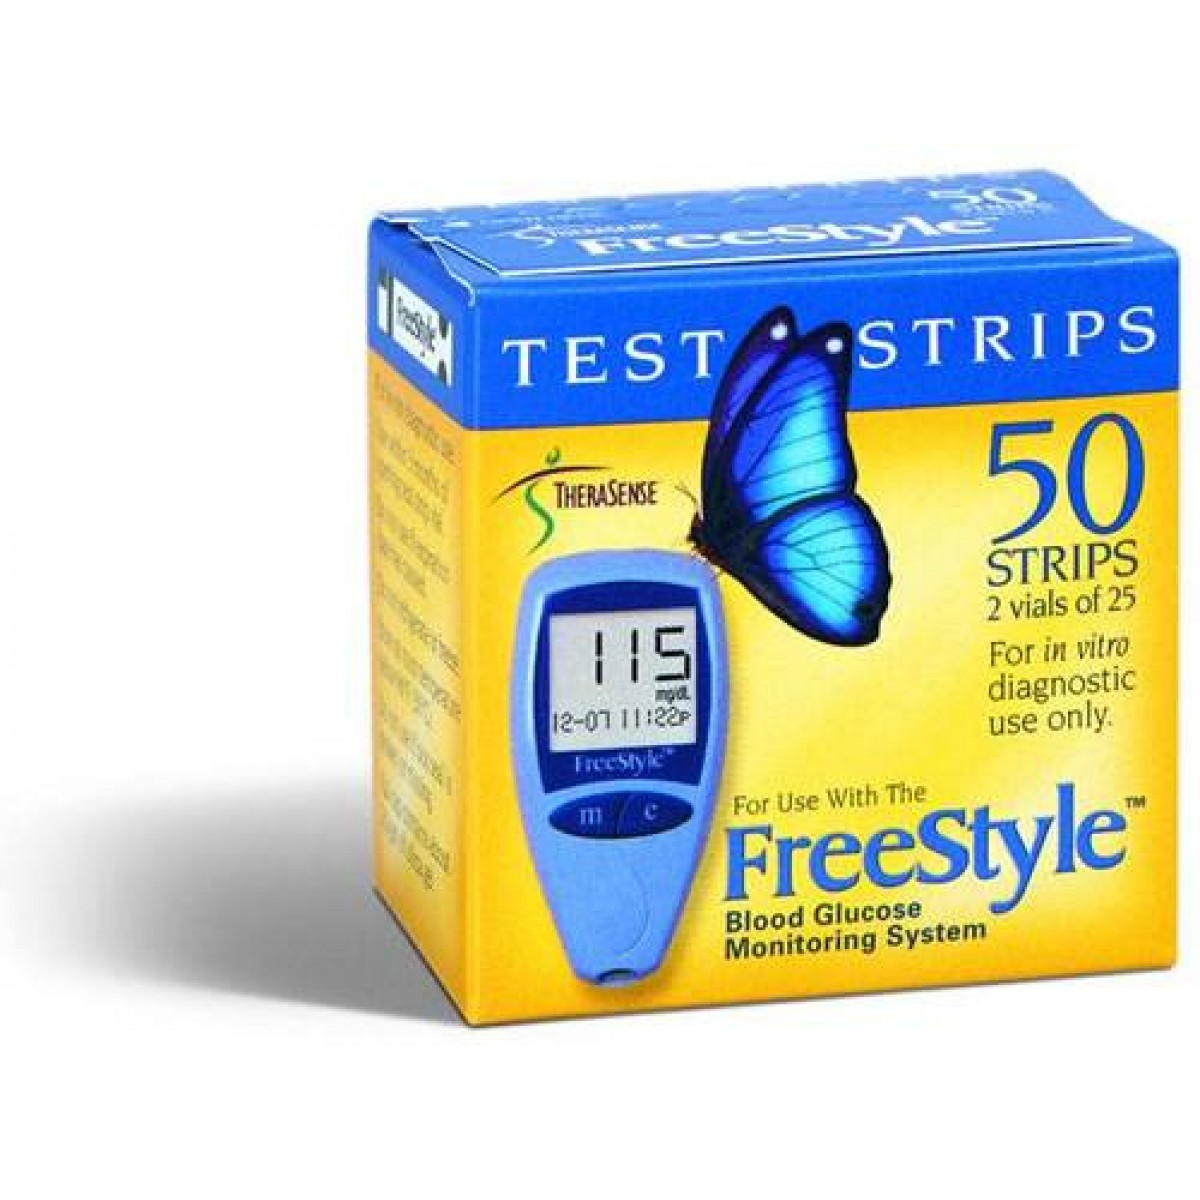 Free style test strips diabetes